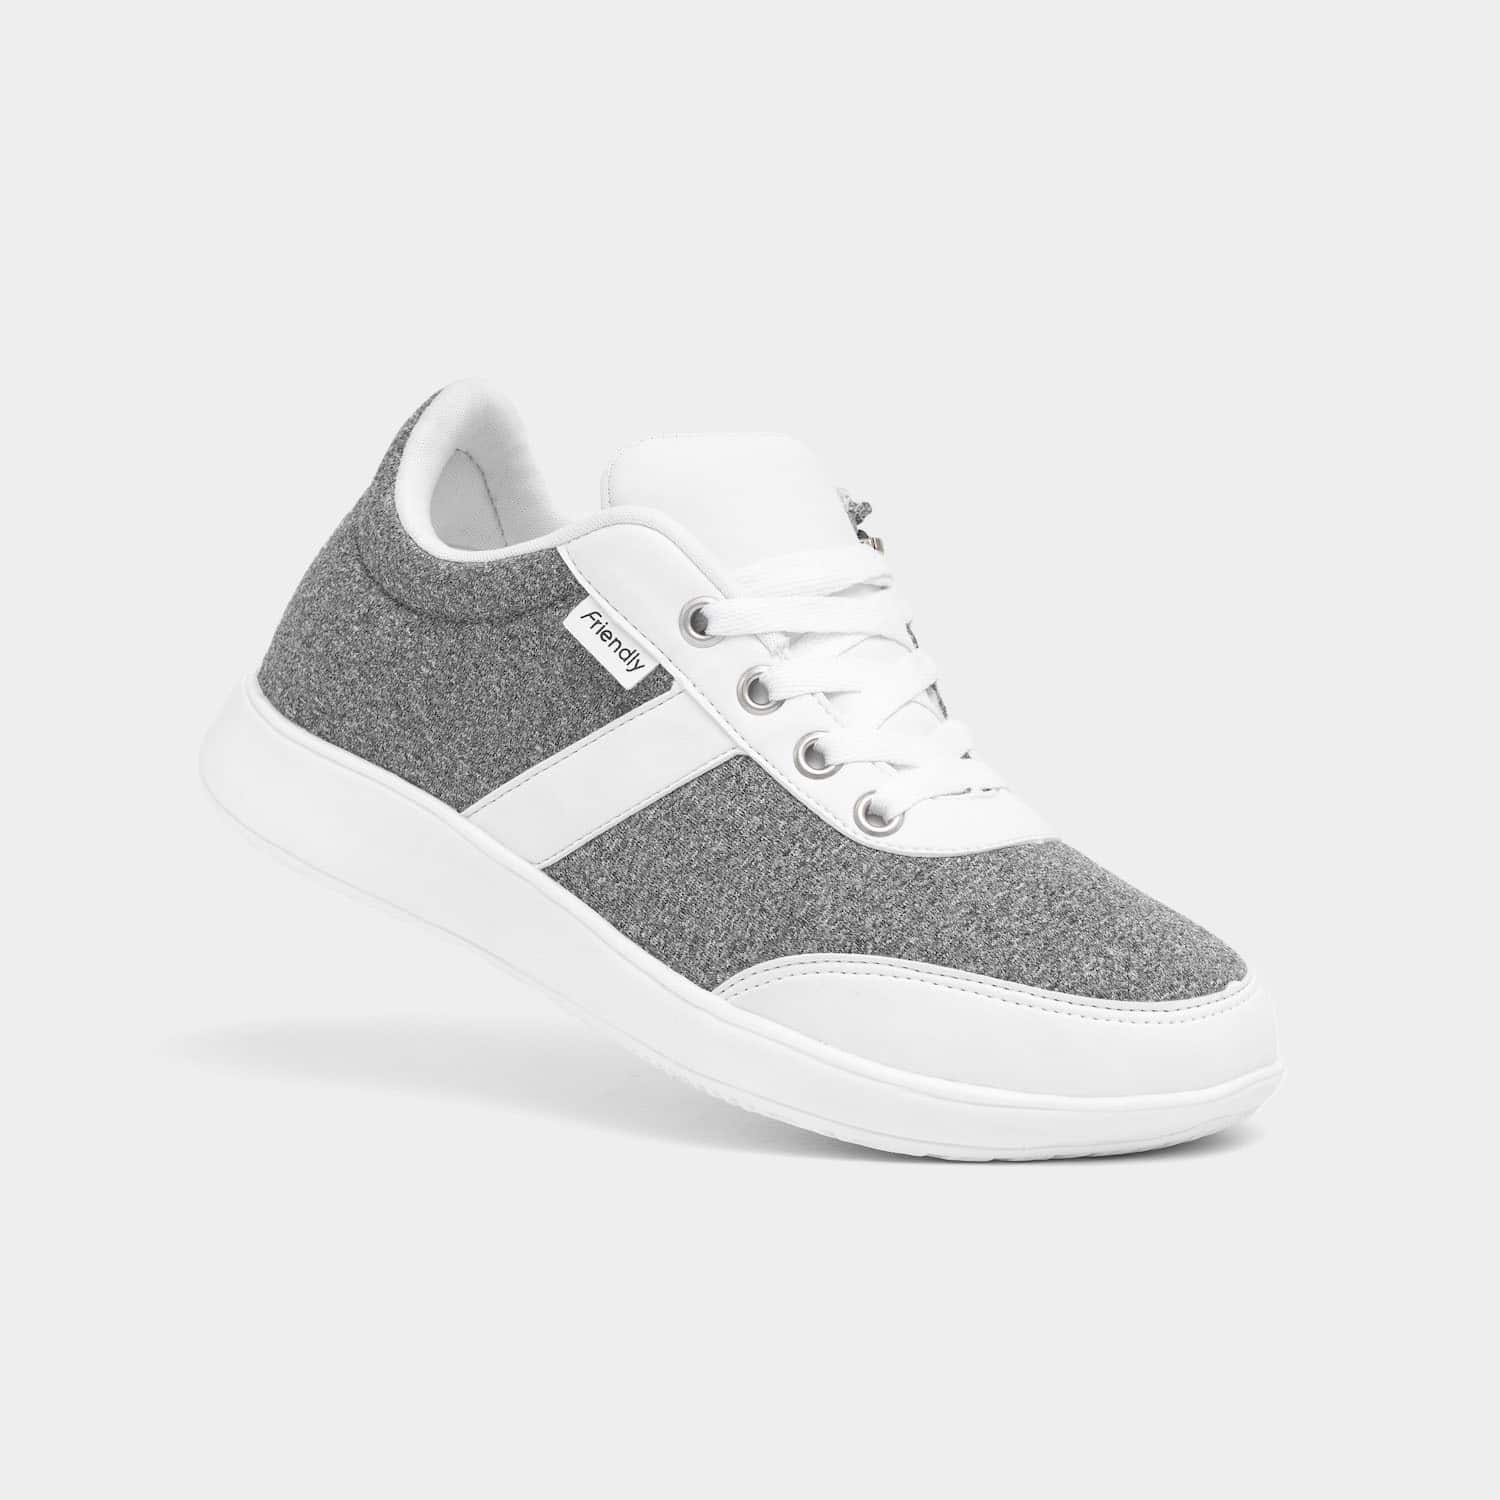 Friendly-Shoes-Womens adaptive clothing brands